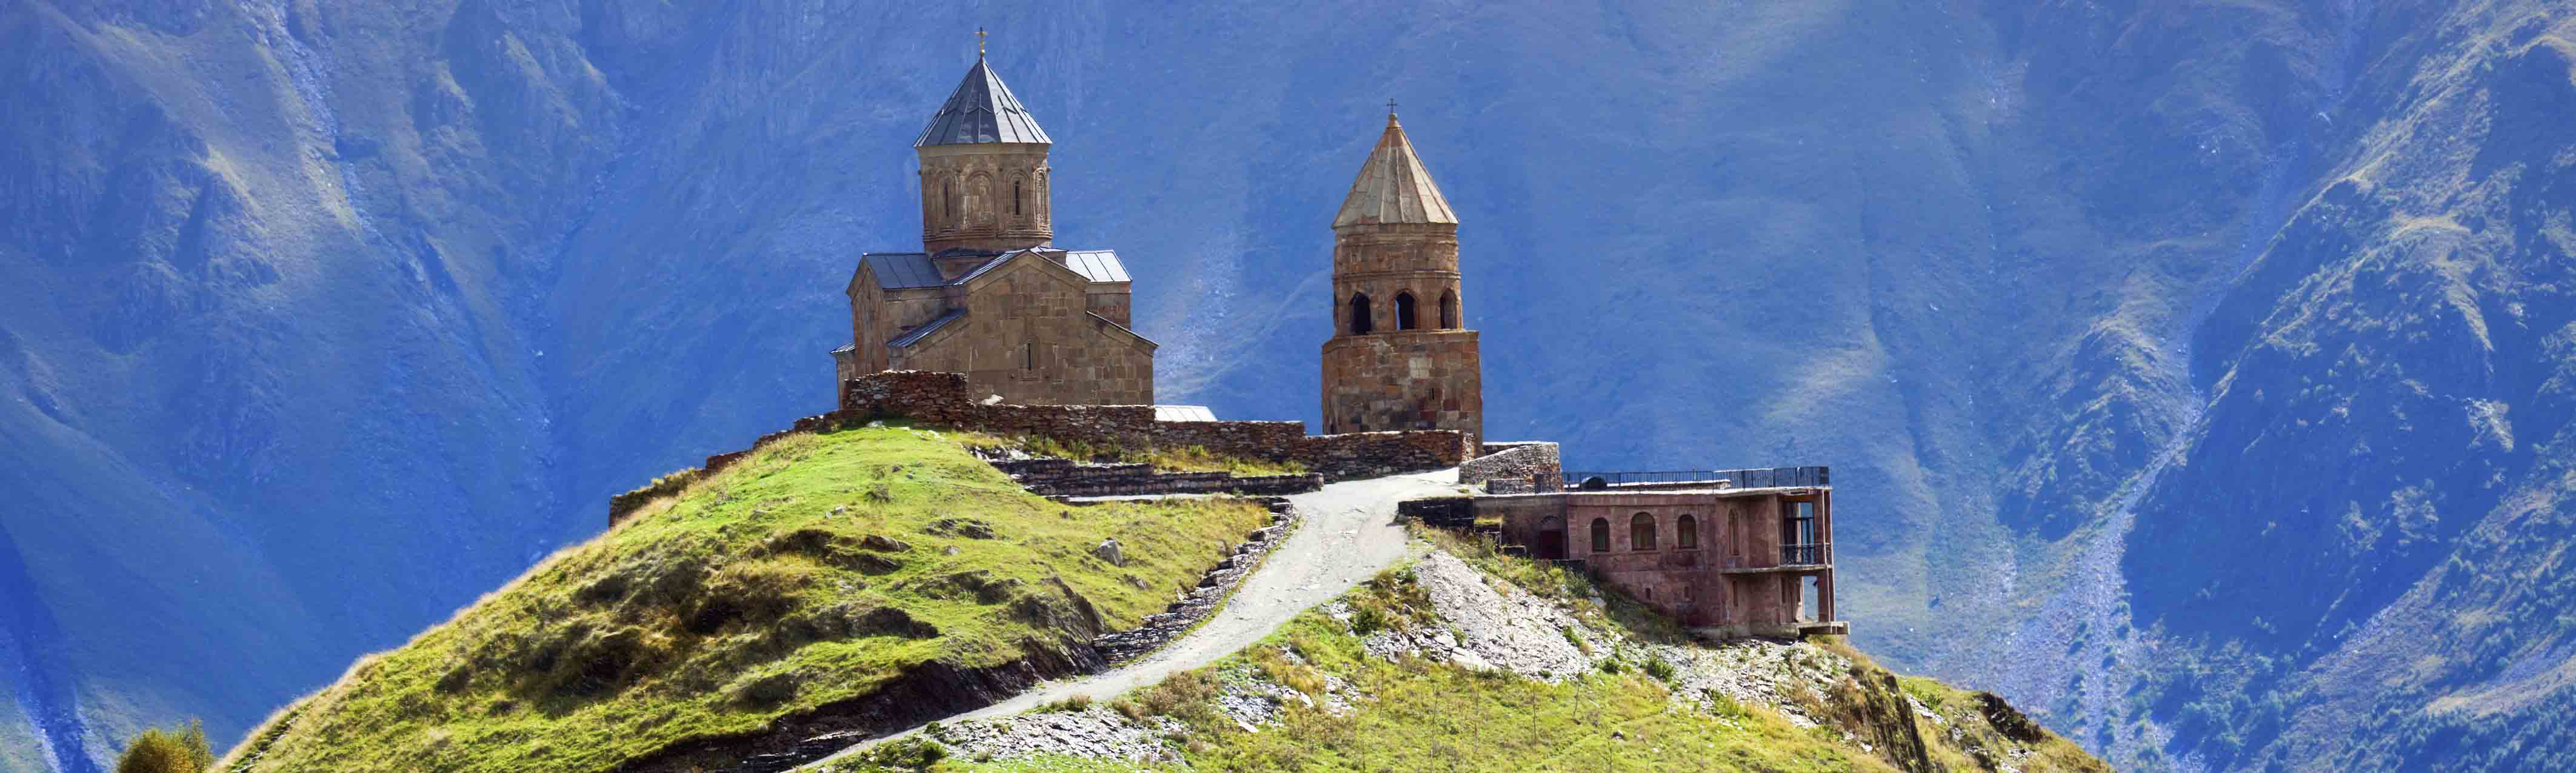 Kazbegi, Stepancminda village in Georgia, Caucasus.